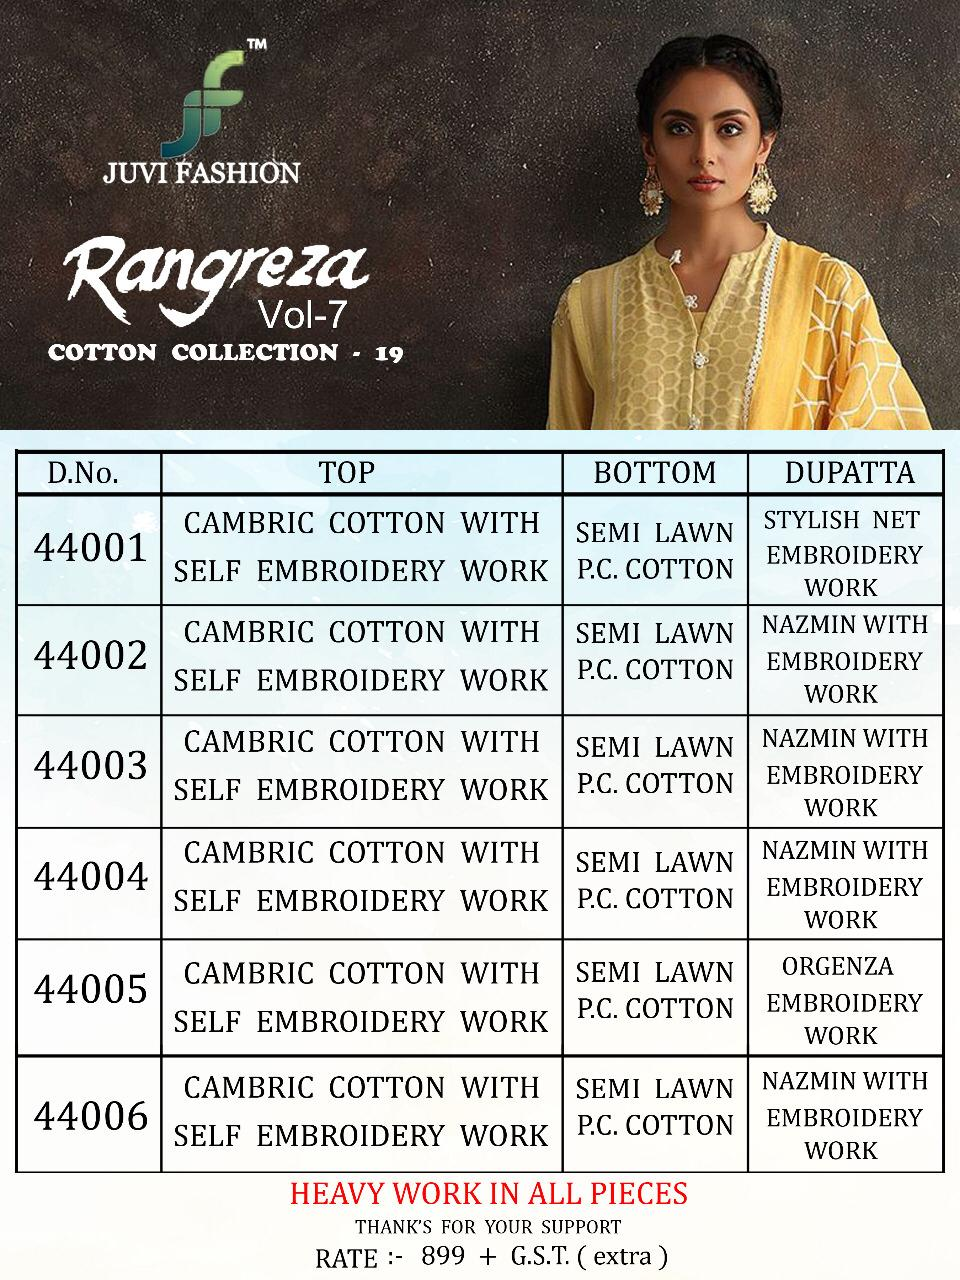 5cf56ba318 ... Image Zip · Download PDF. Rangreza vol 7 cotton collection 19 by juvi  fashion series 44001 to 44006 cambric cotton embroidered designer Pakistani  suits ...